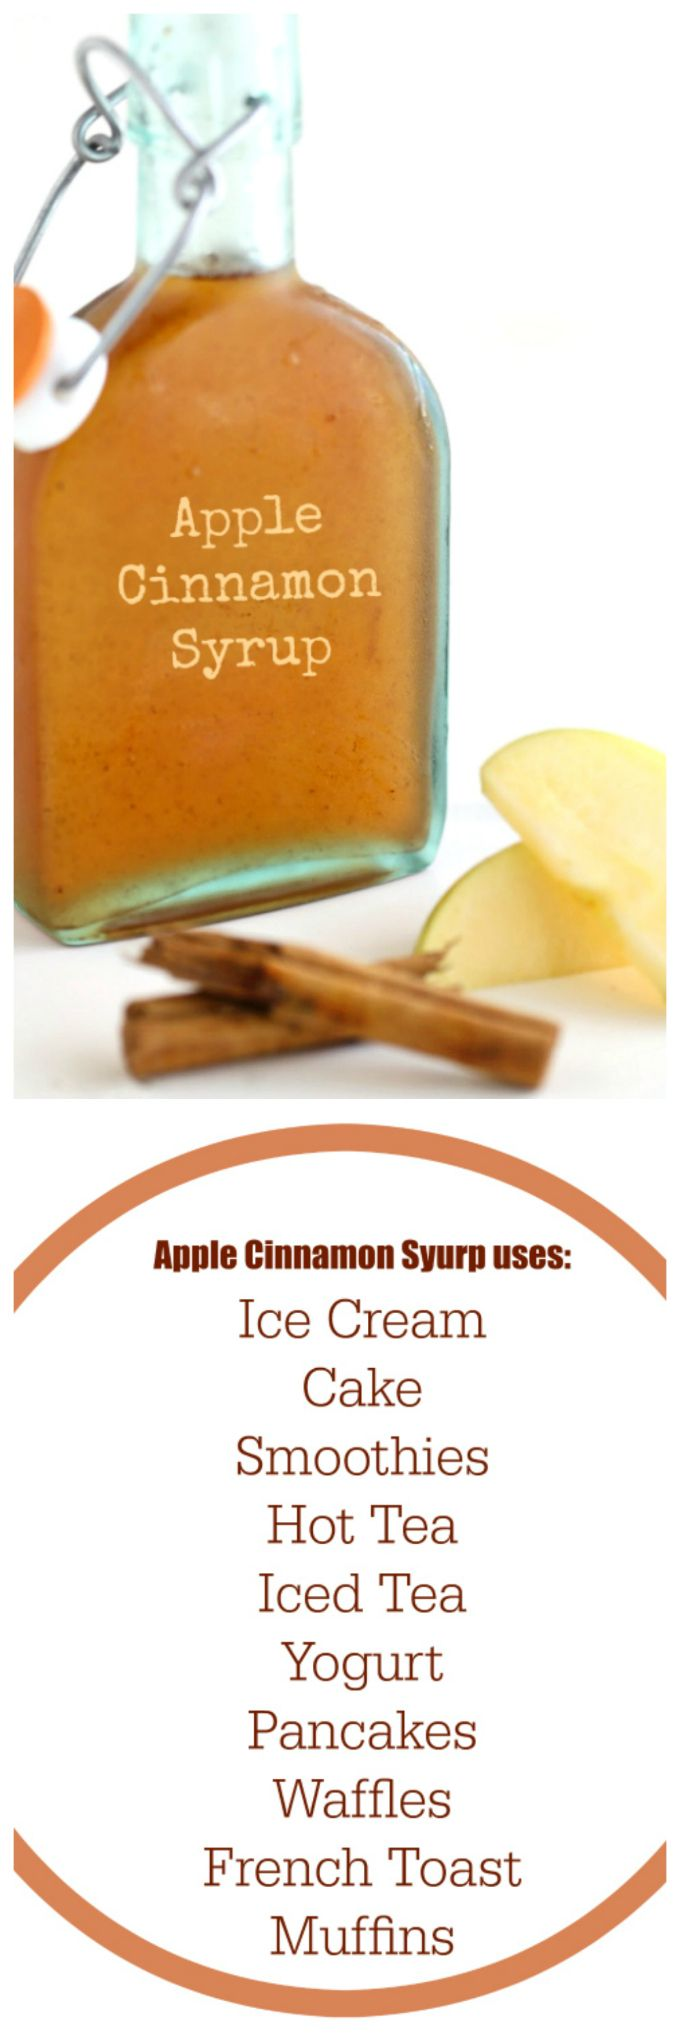 apple-cinnamon-syrup-and-its-many-uses-createdbydiane